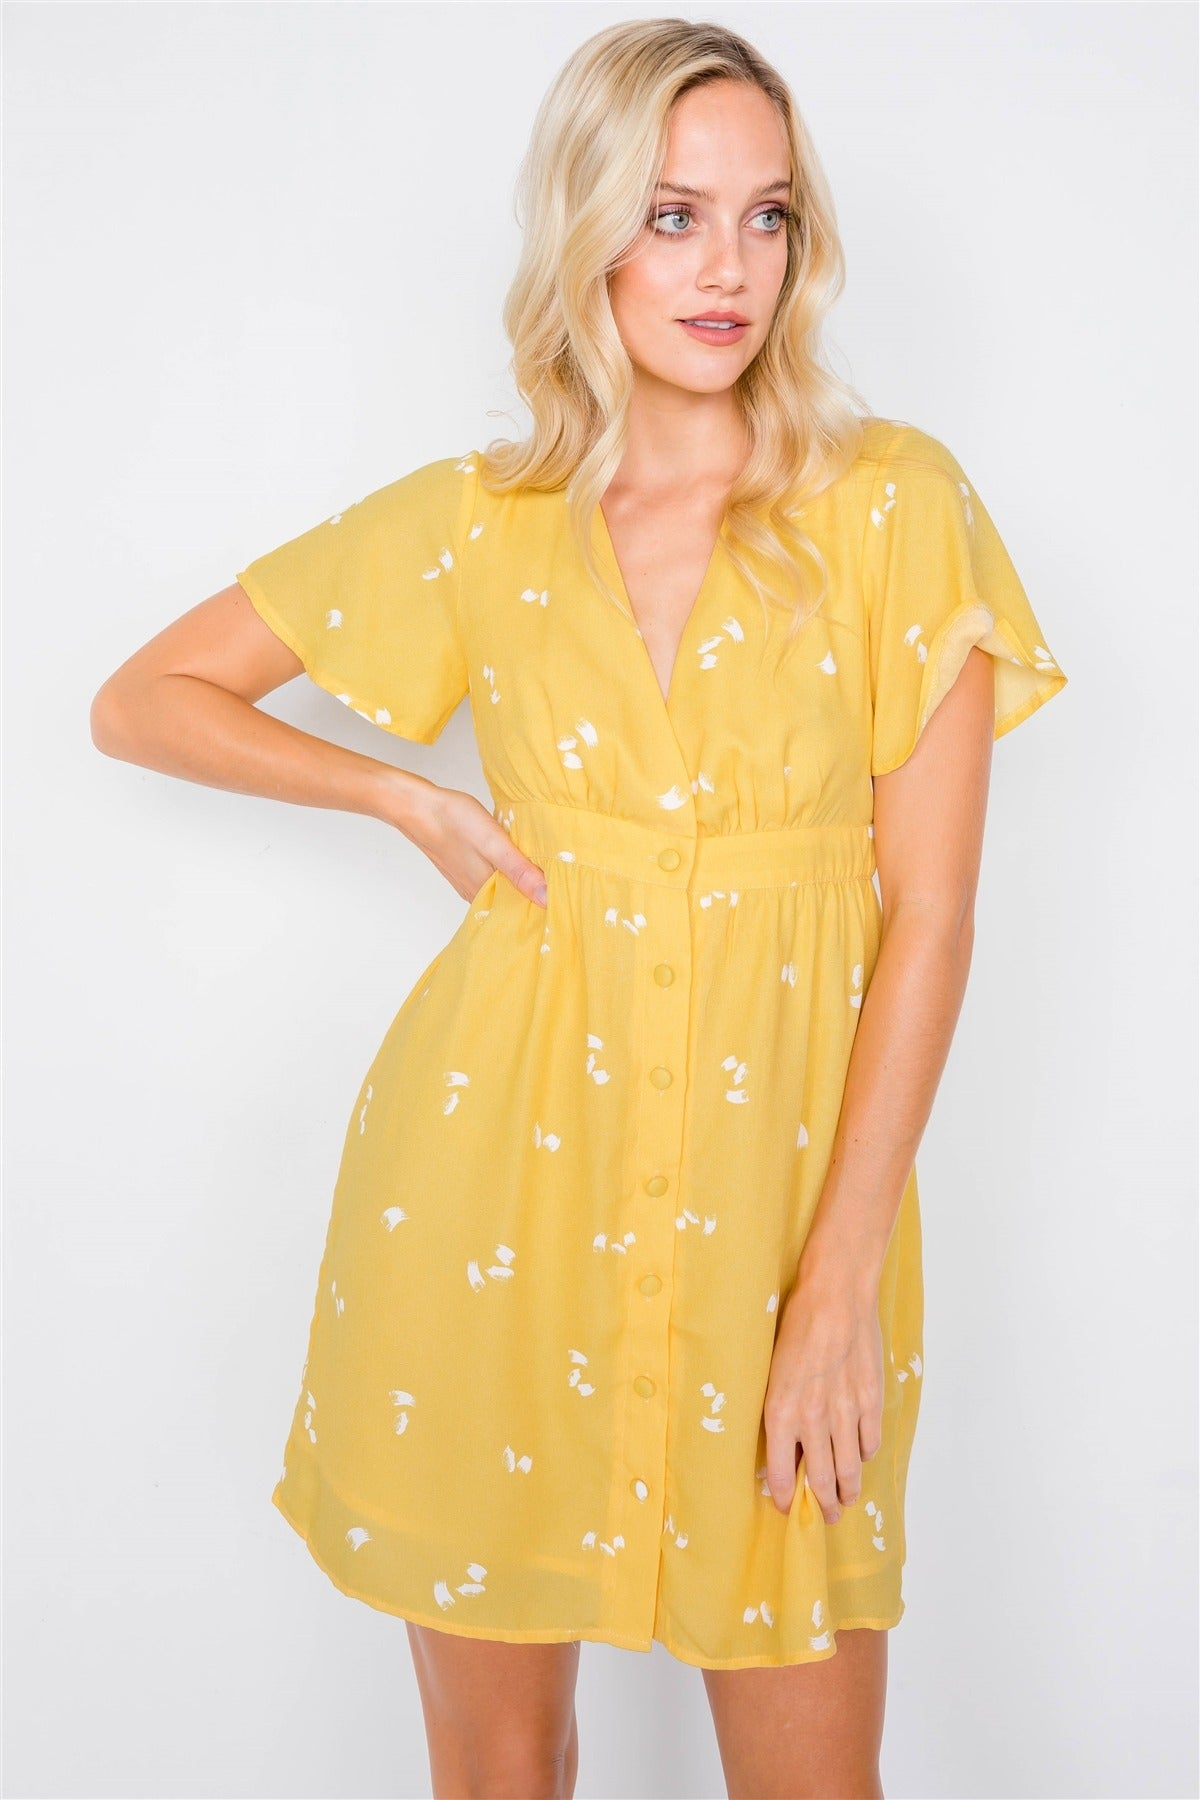 Flutter Sleeve Button Down V-neck Mini Dress - Kendalls Deals